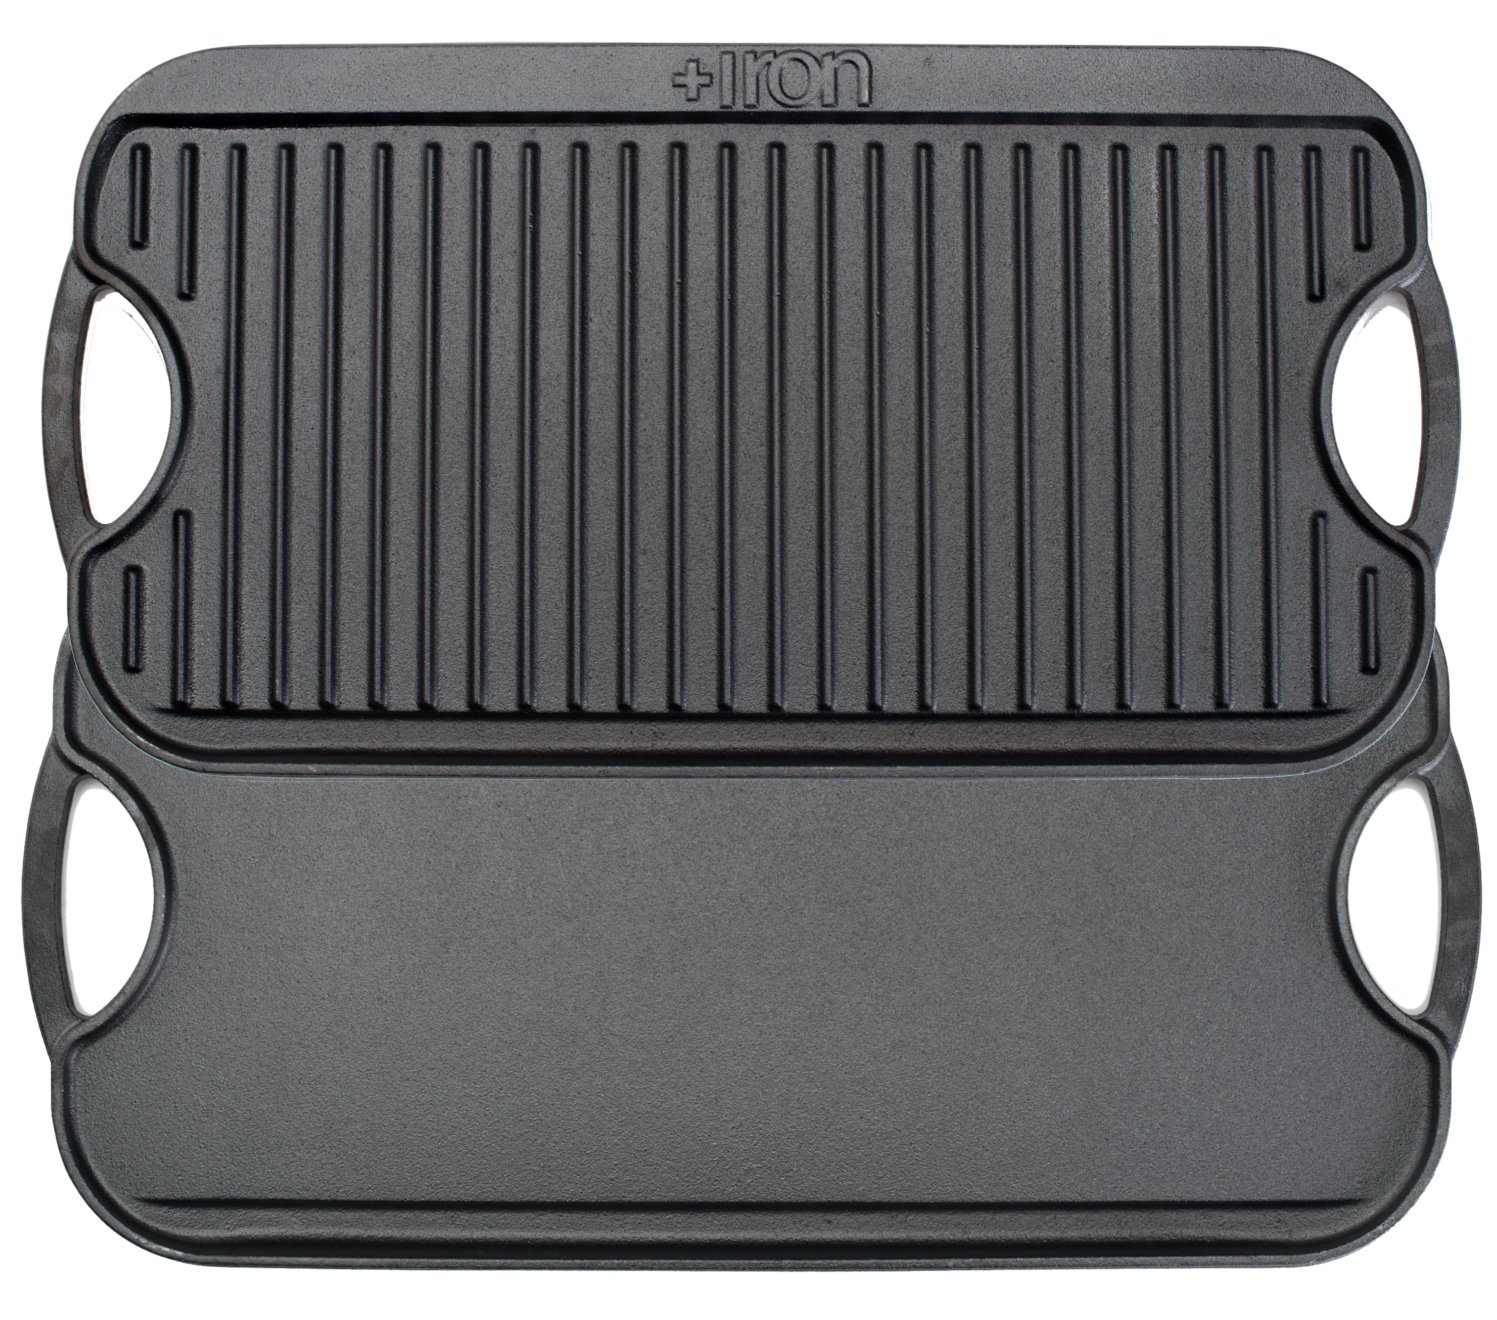 +Iron Griddle Cast Iron Reversible Grill/Griddle 20 inch x 10 inch +Steel